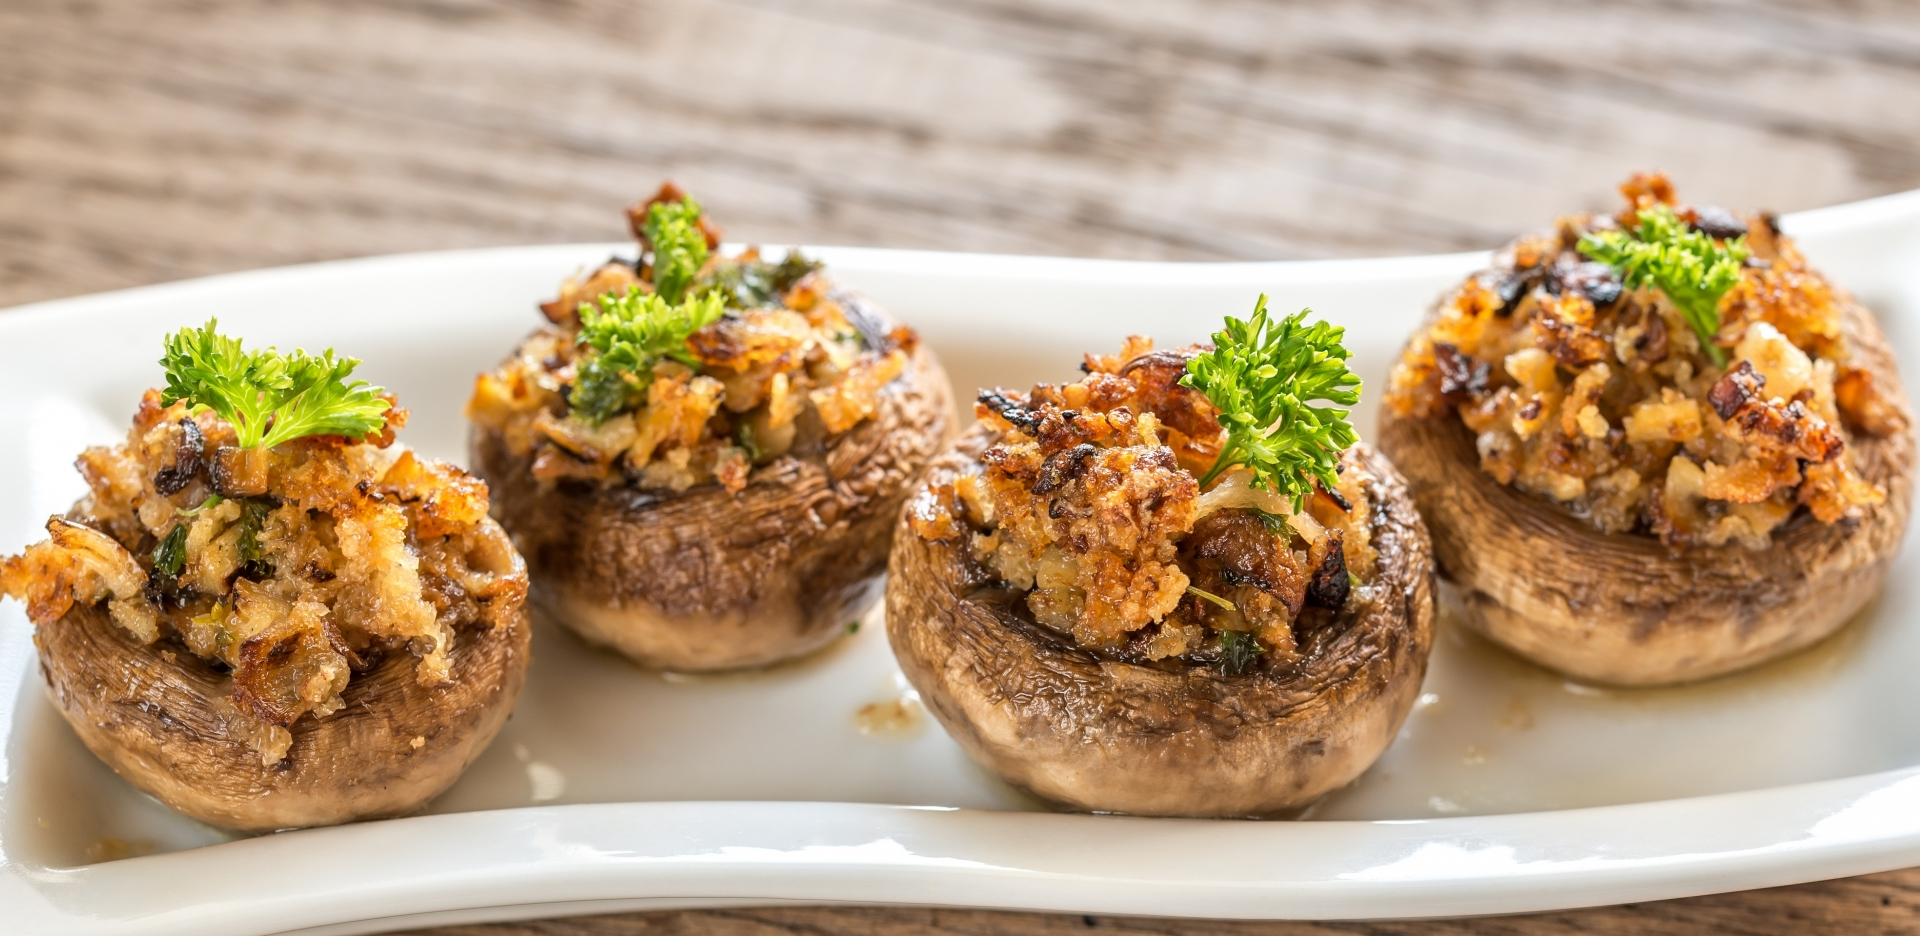 Smoky Mushroom and Walnut Portobello